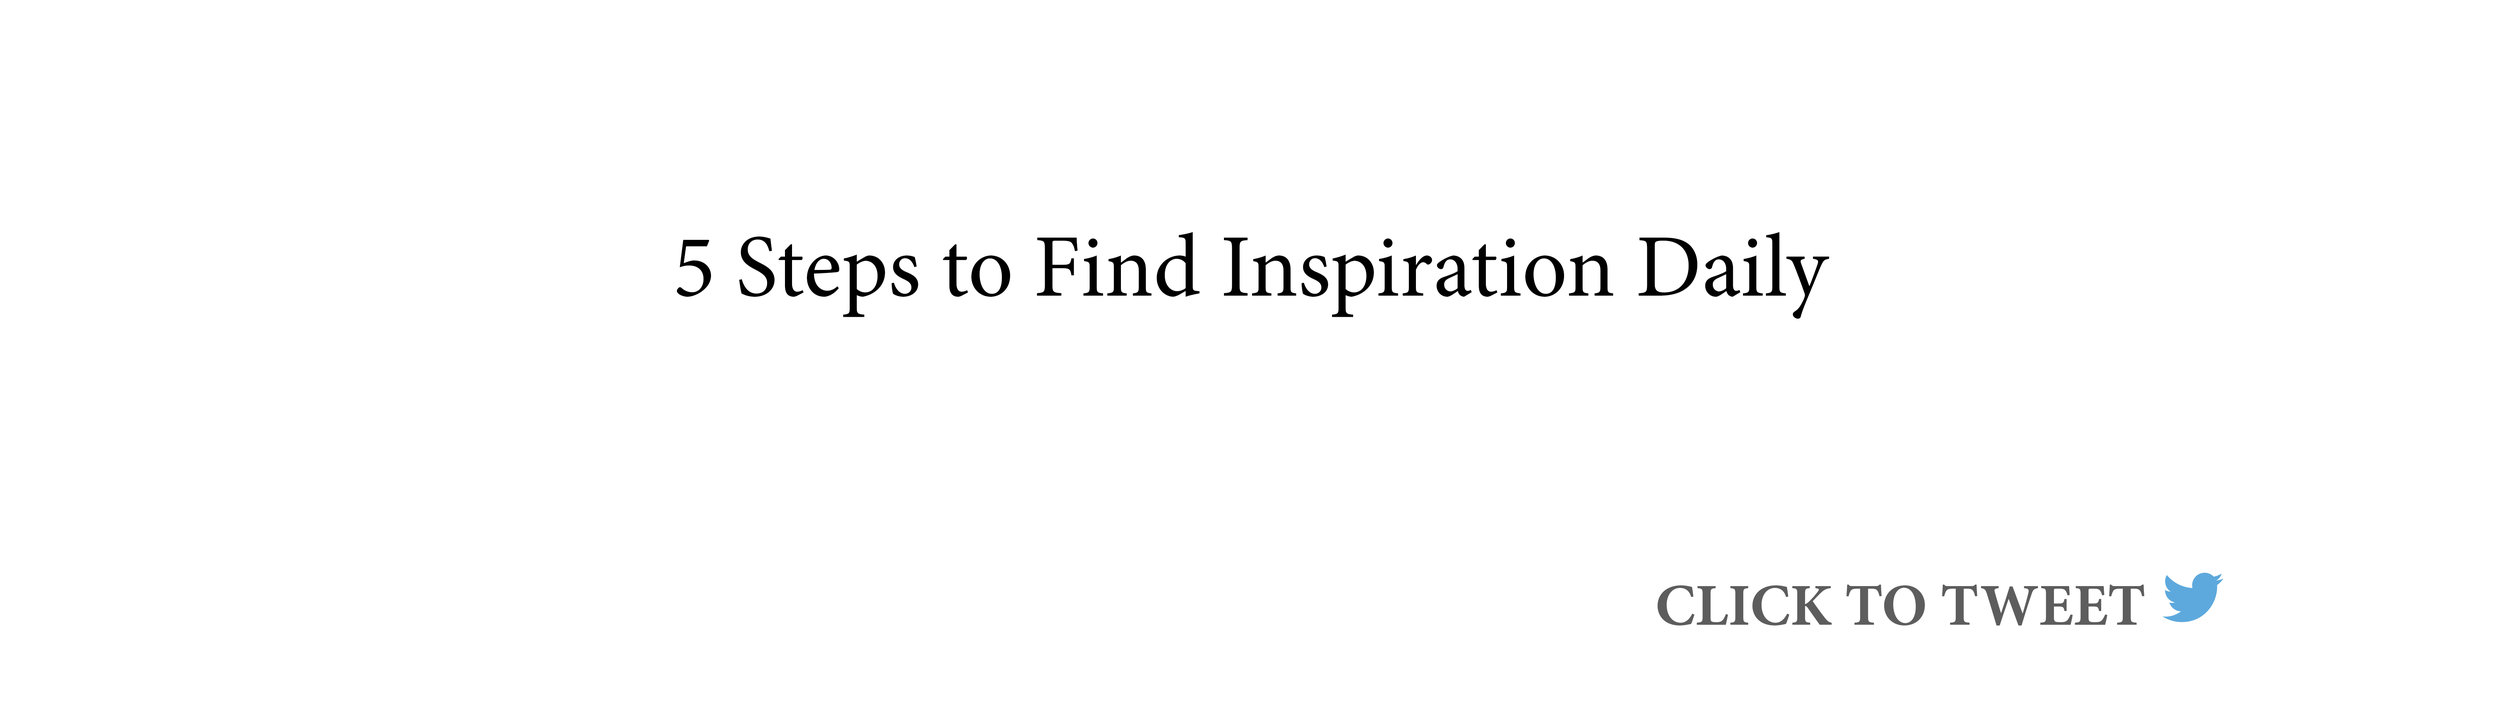 5-steps-to-find-inspiration-daily-click-to-tweet-1.jpg